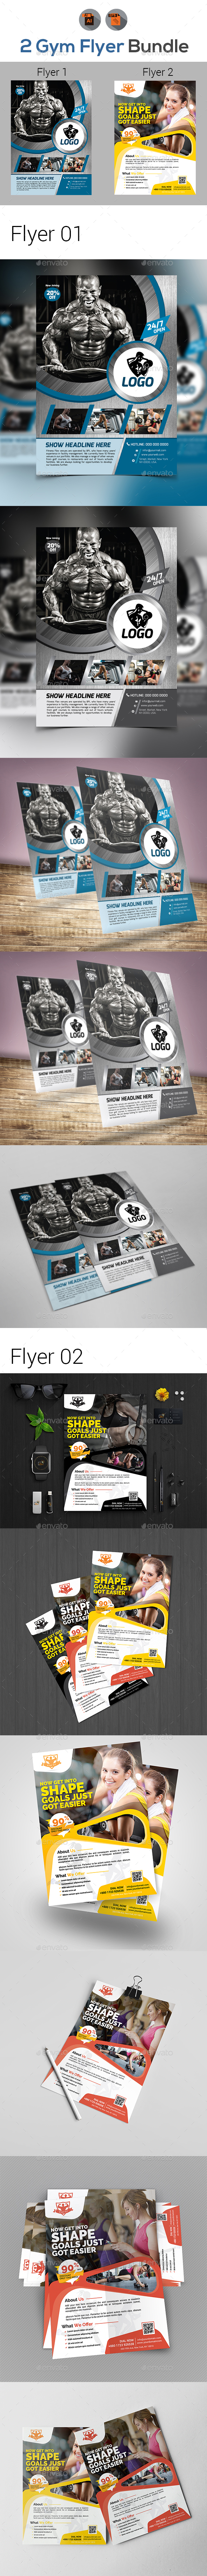 Fitness Flyer Bundle - Corporate Flyers